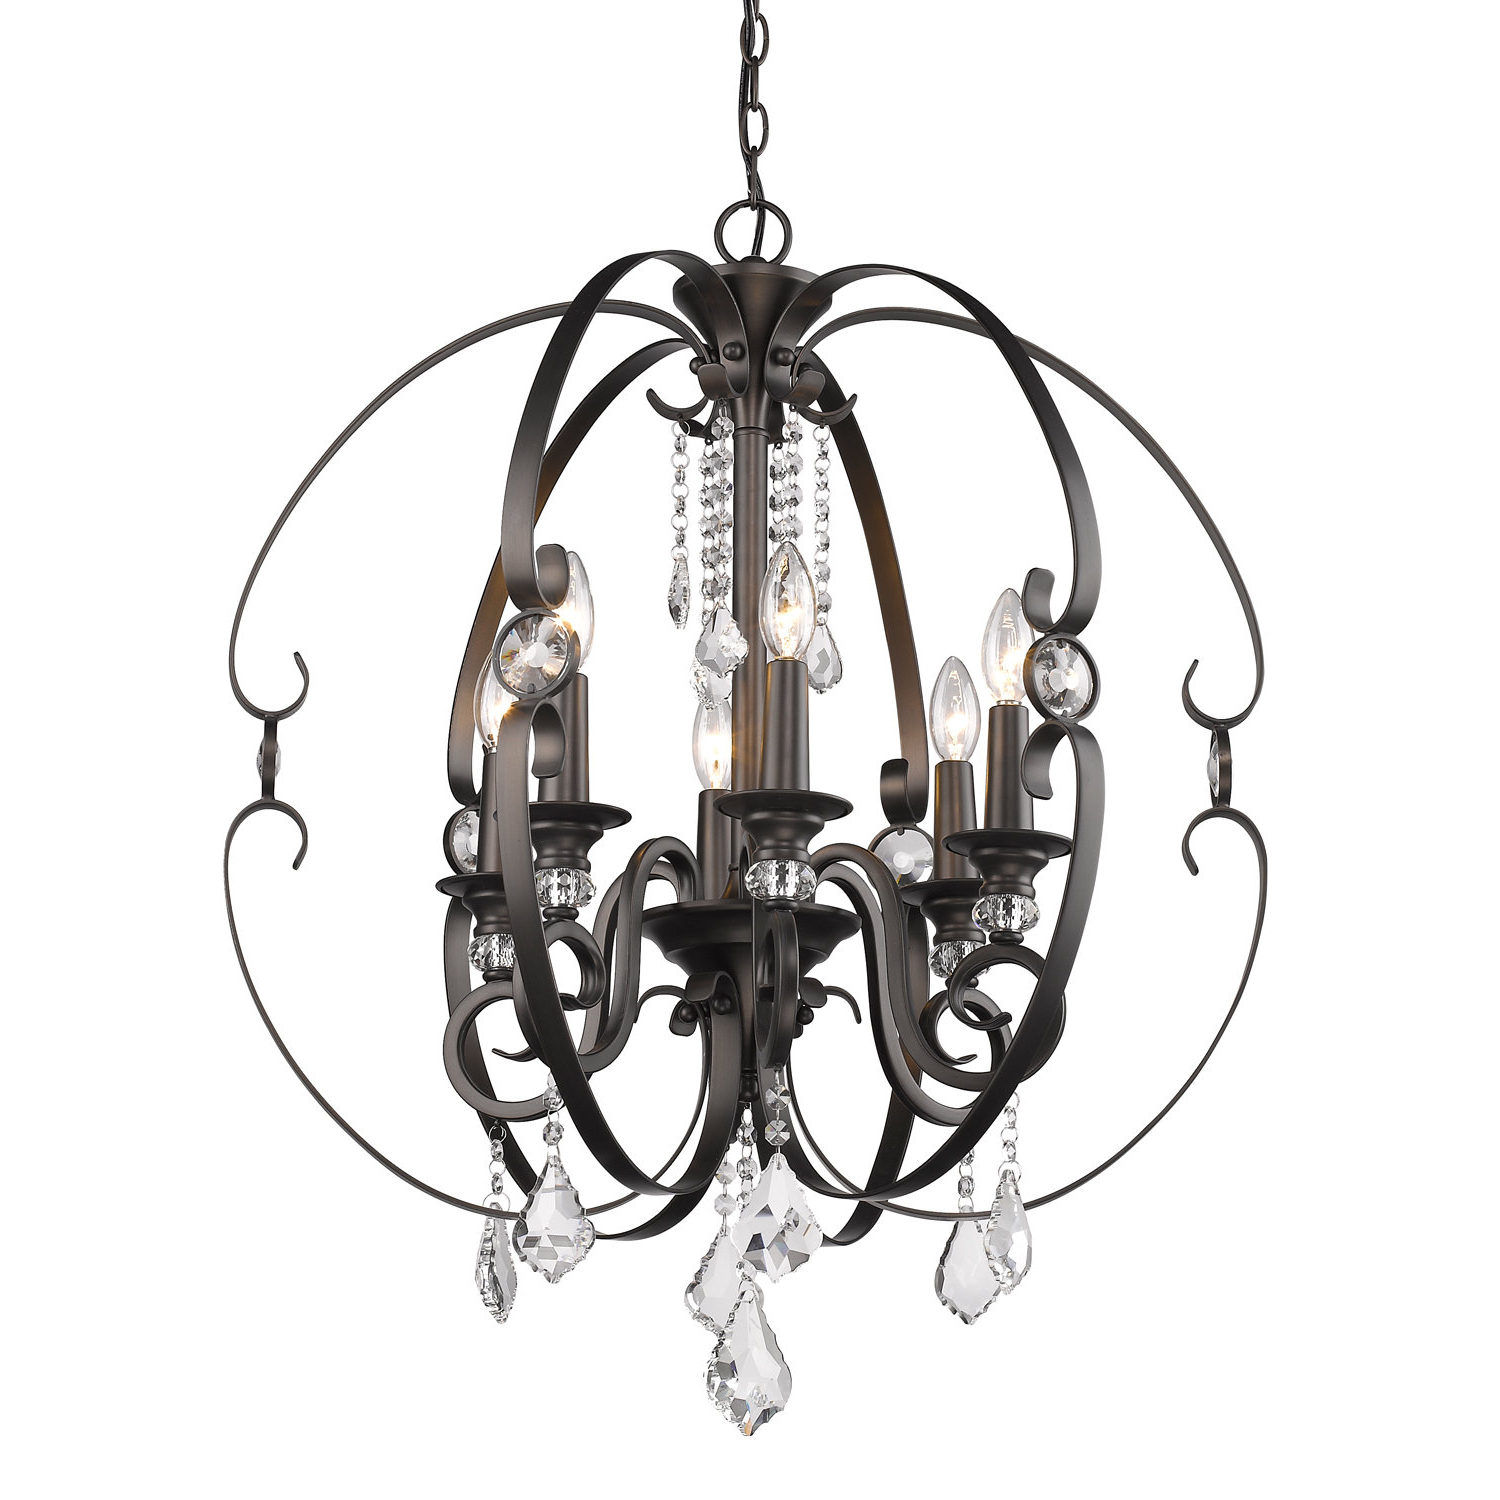 Alden 6 Light Globe Chandeliers Intended For 2020 Hardouin 6 Light Globe Chandelier (Gallery 8 of 20)